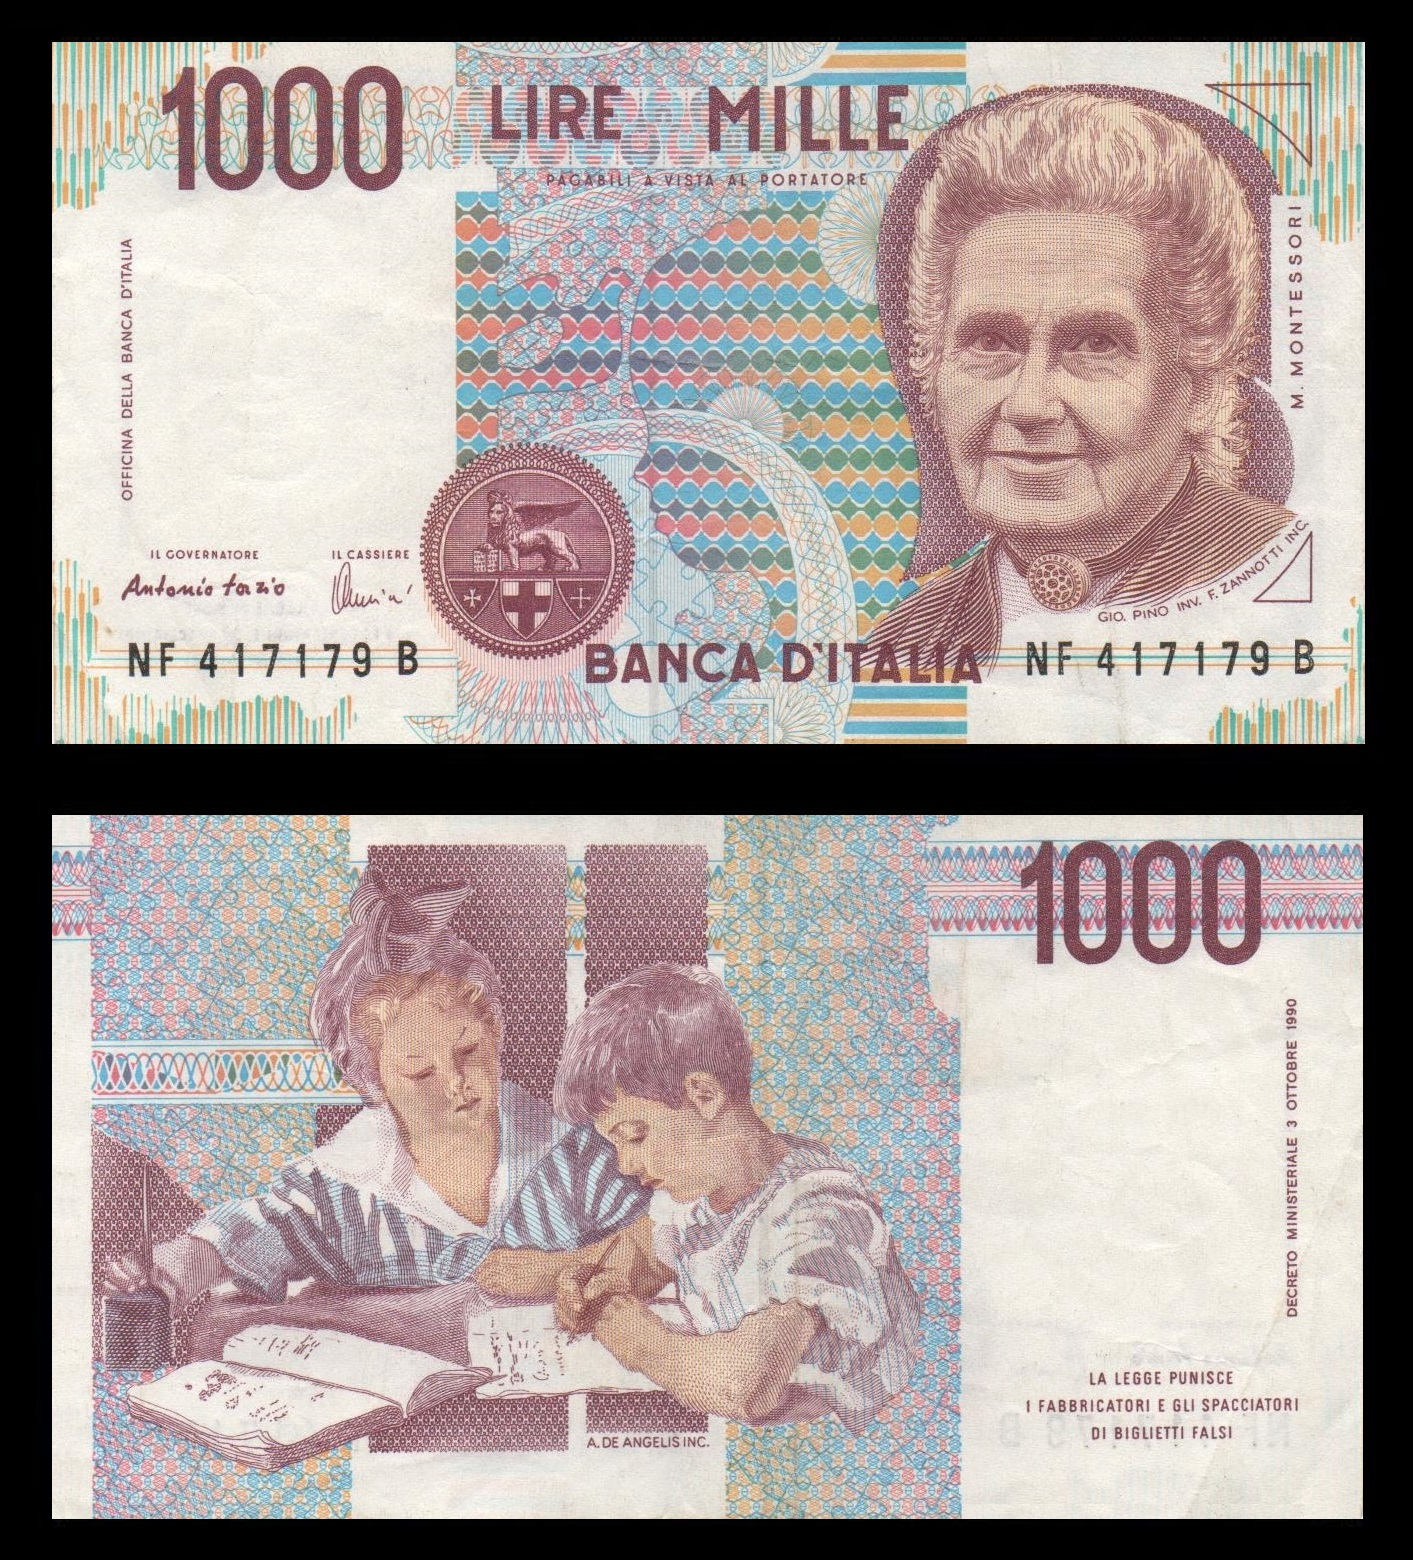 Description Lire 1000 (Maria Montessori).jpg